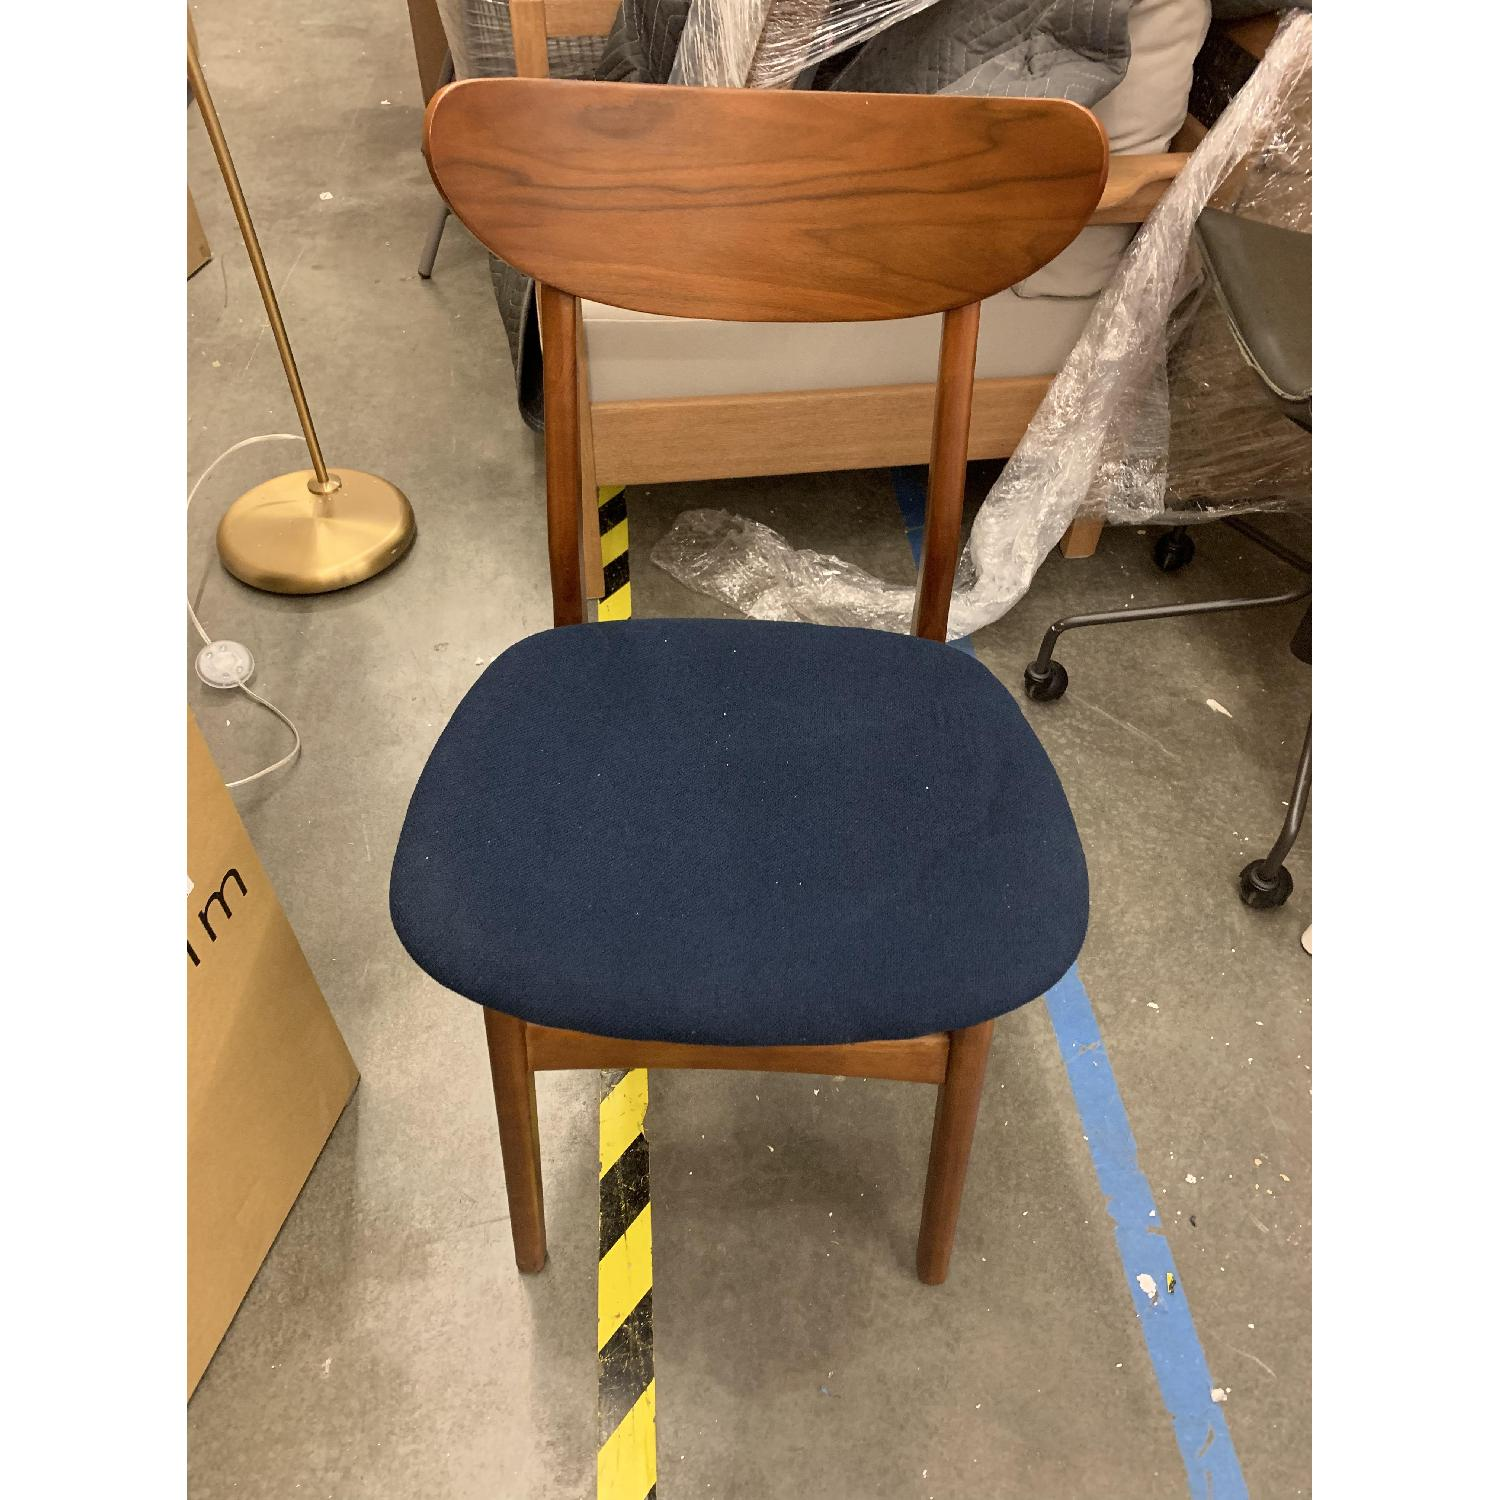 West Elm Classic Cafe Dining Chair in Nightshade - image-3